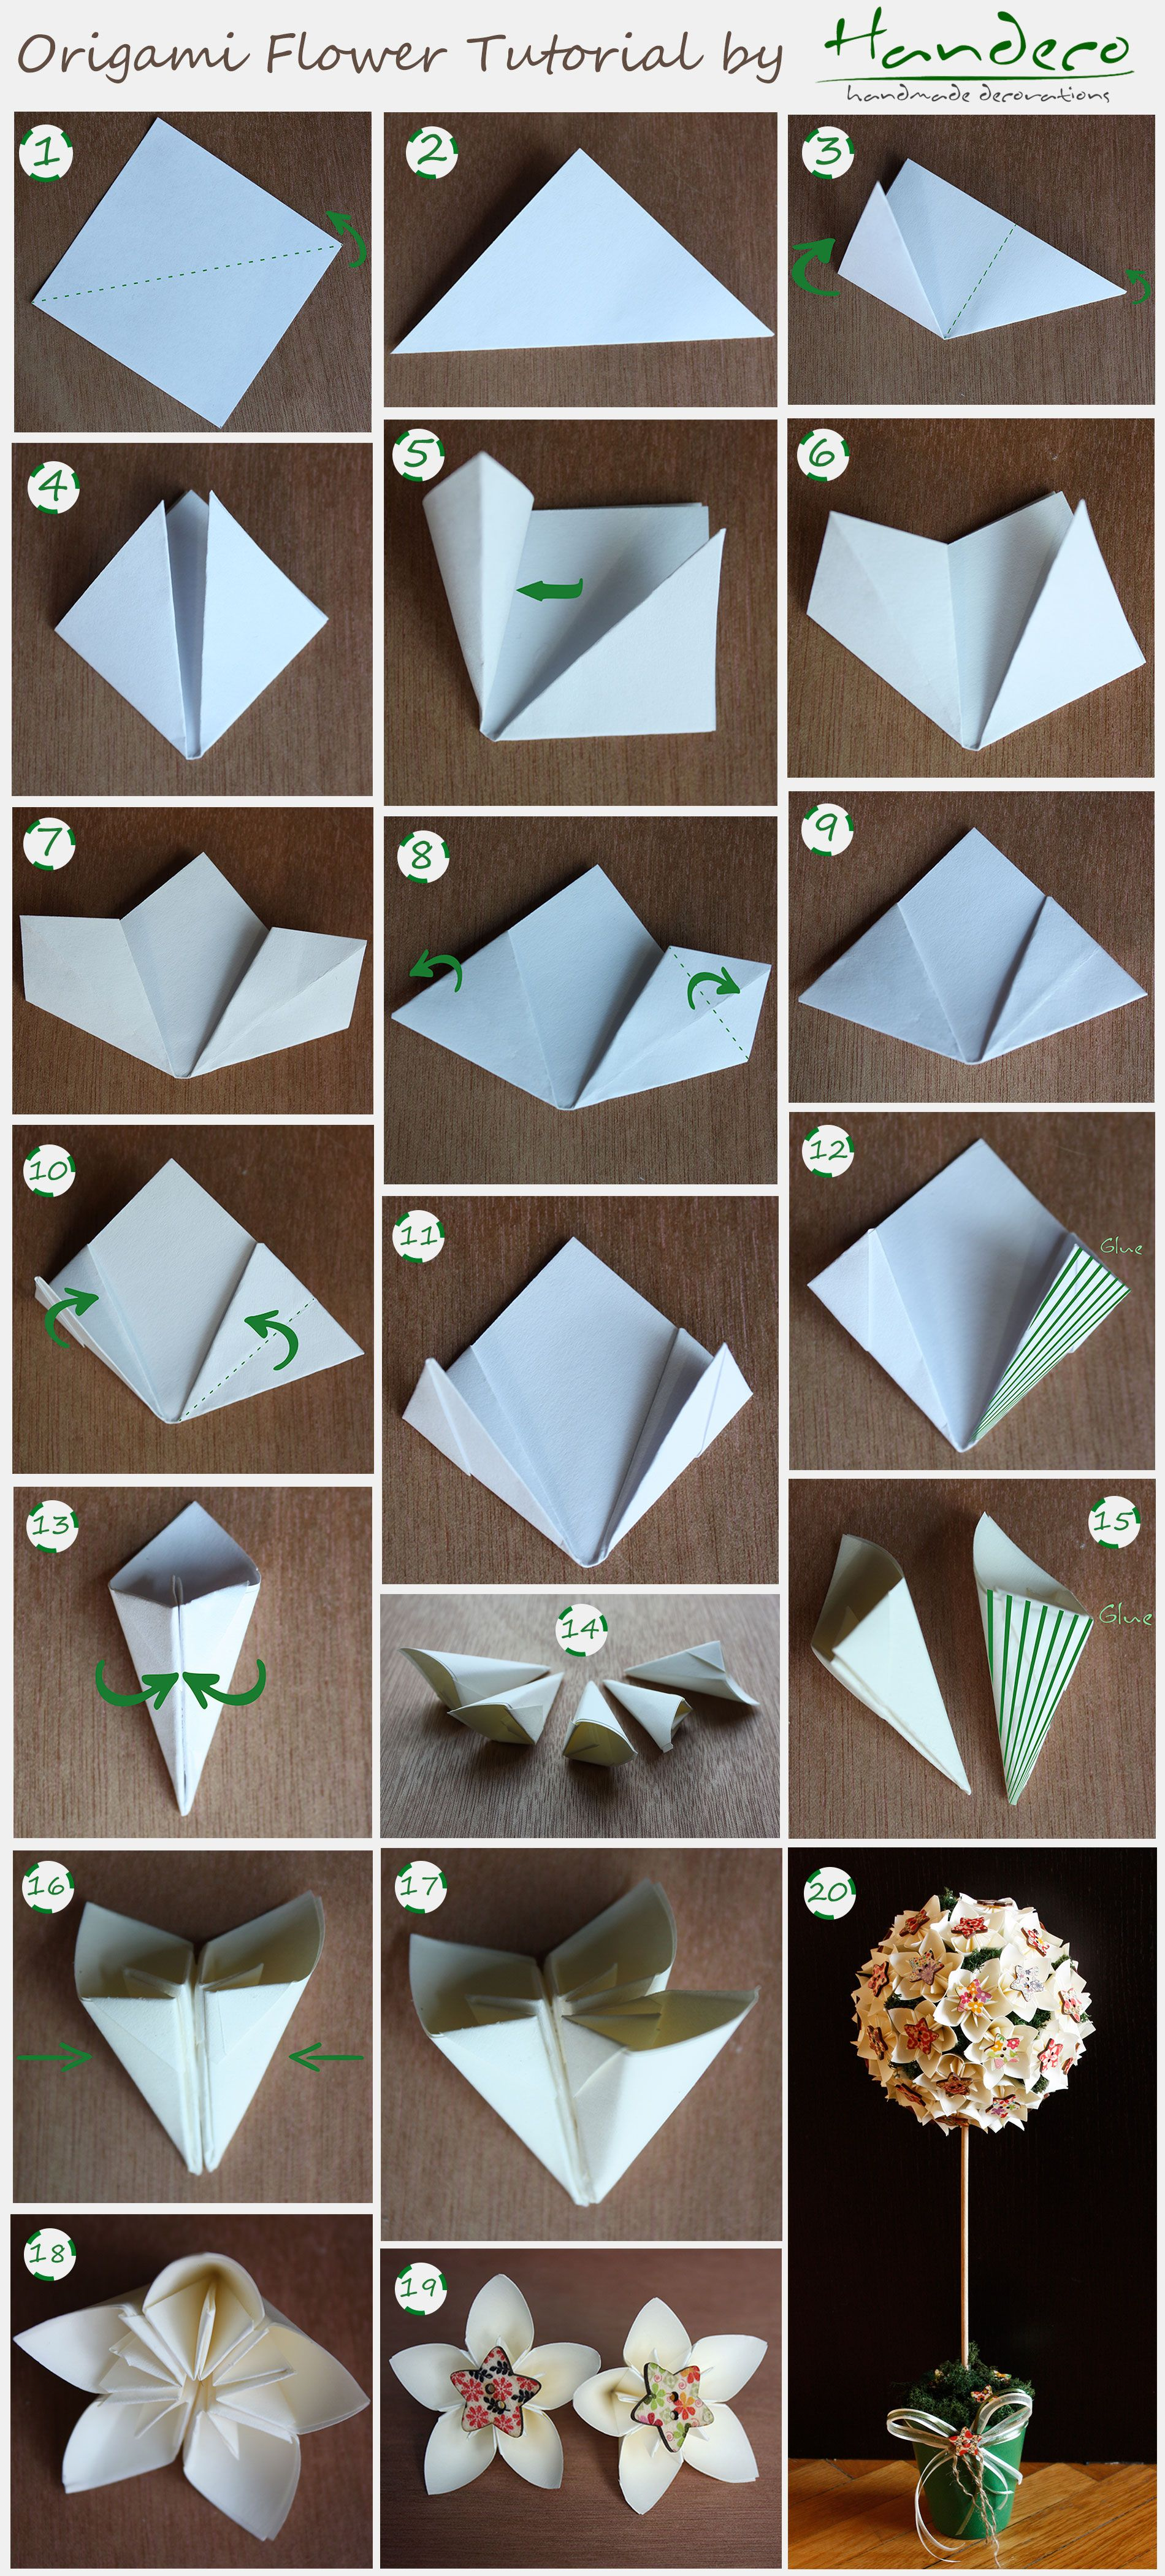 Pin by Handeco on DIY Tutorials | Origami flowers tutorial ... - photo#38